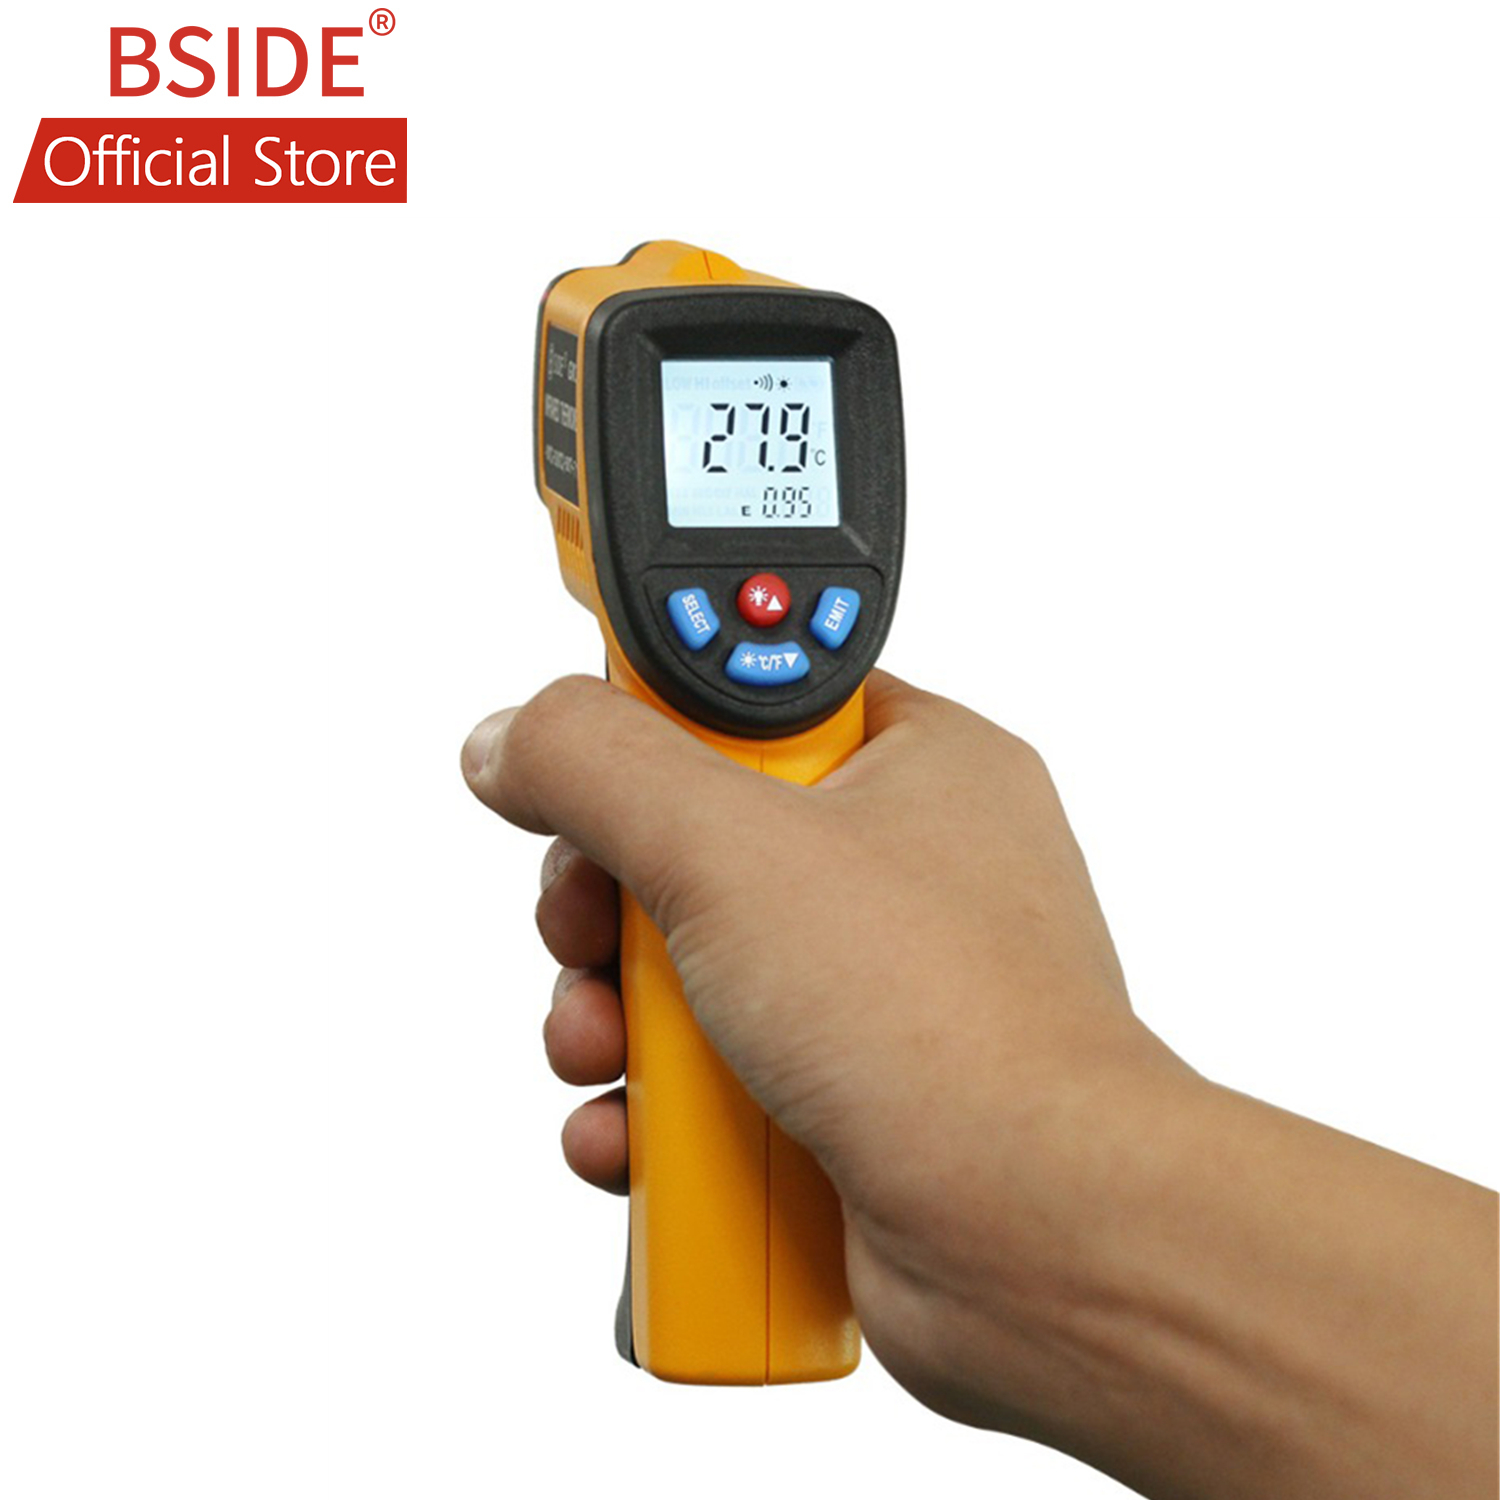 BSIDE GM320 Non Contact IR Infrared Thermometer Digital Temperature Meter with C/F Selection for Industry Home-in Temperature Instruments from Tools    1